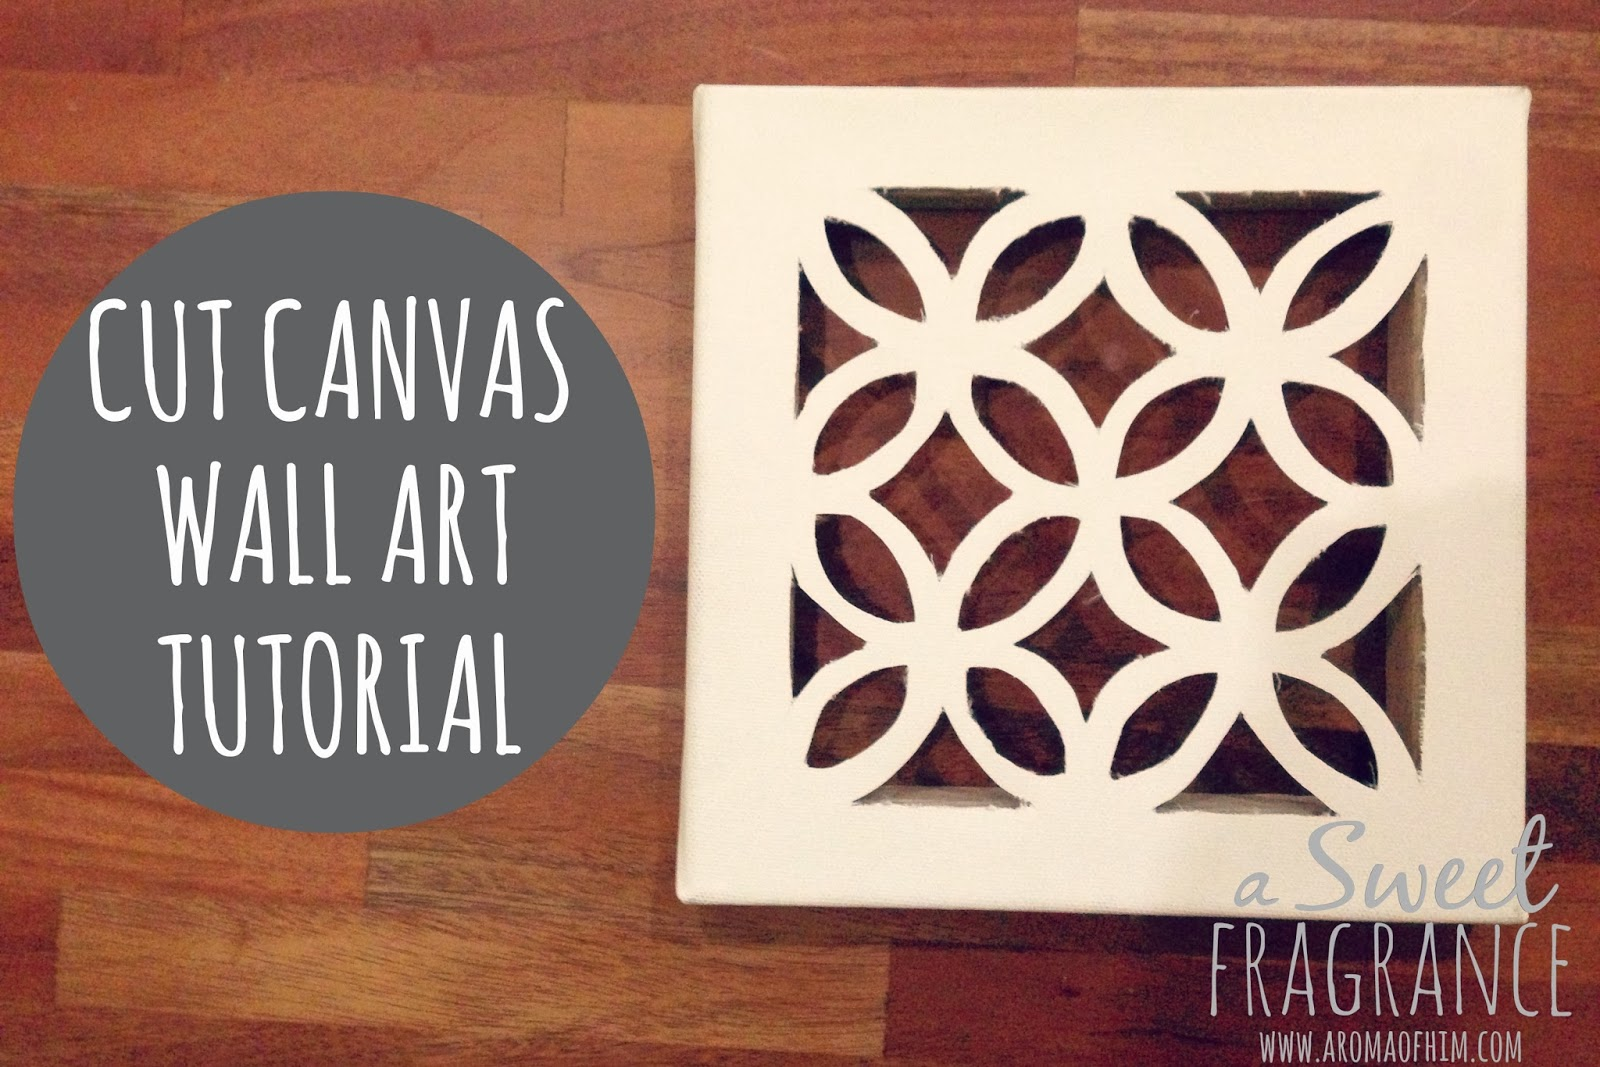 Diy Wall Art That Looks Expensive : Diy cut canvas wall art that looks expensive but is cheap